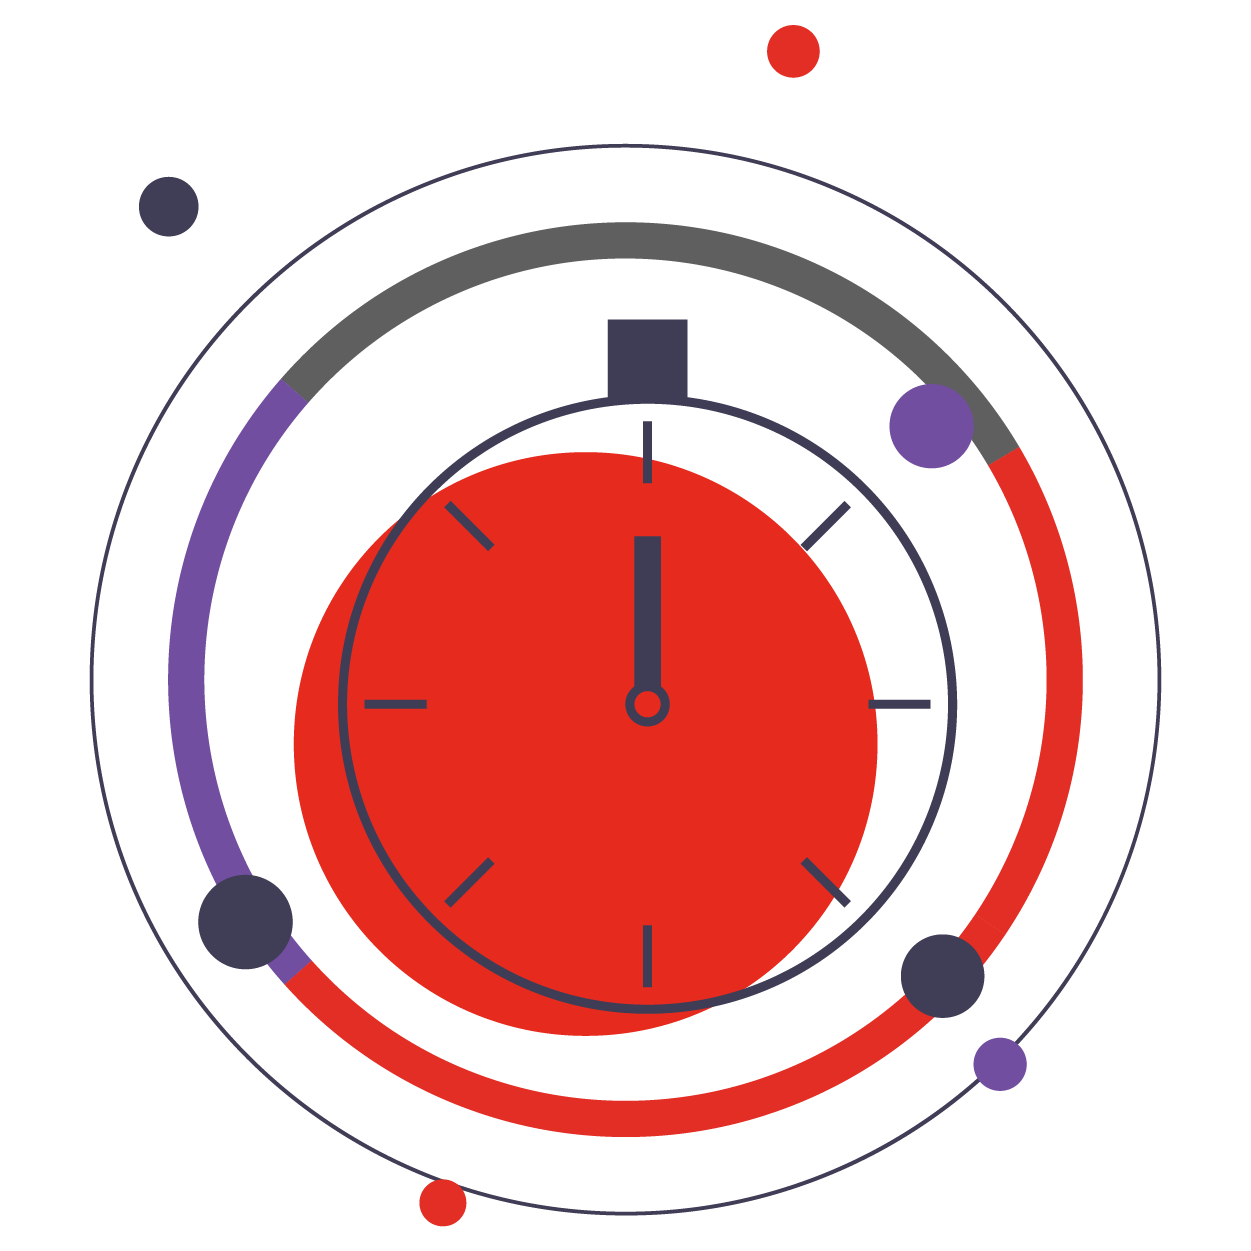 clock icon for motivational speech topic about effects of authenticity